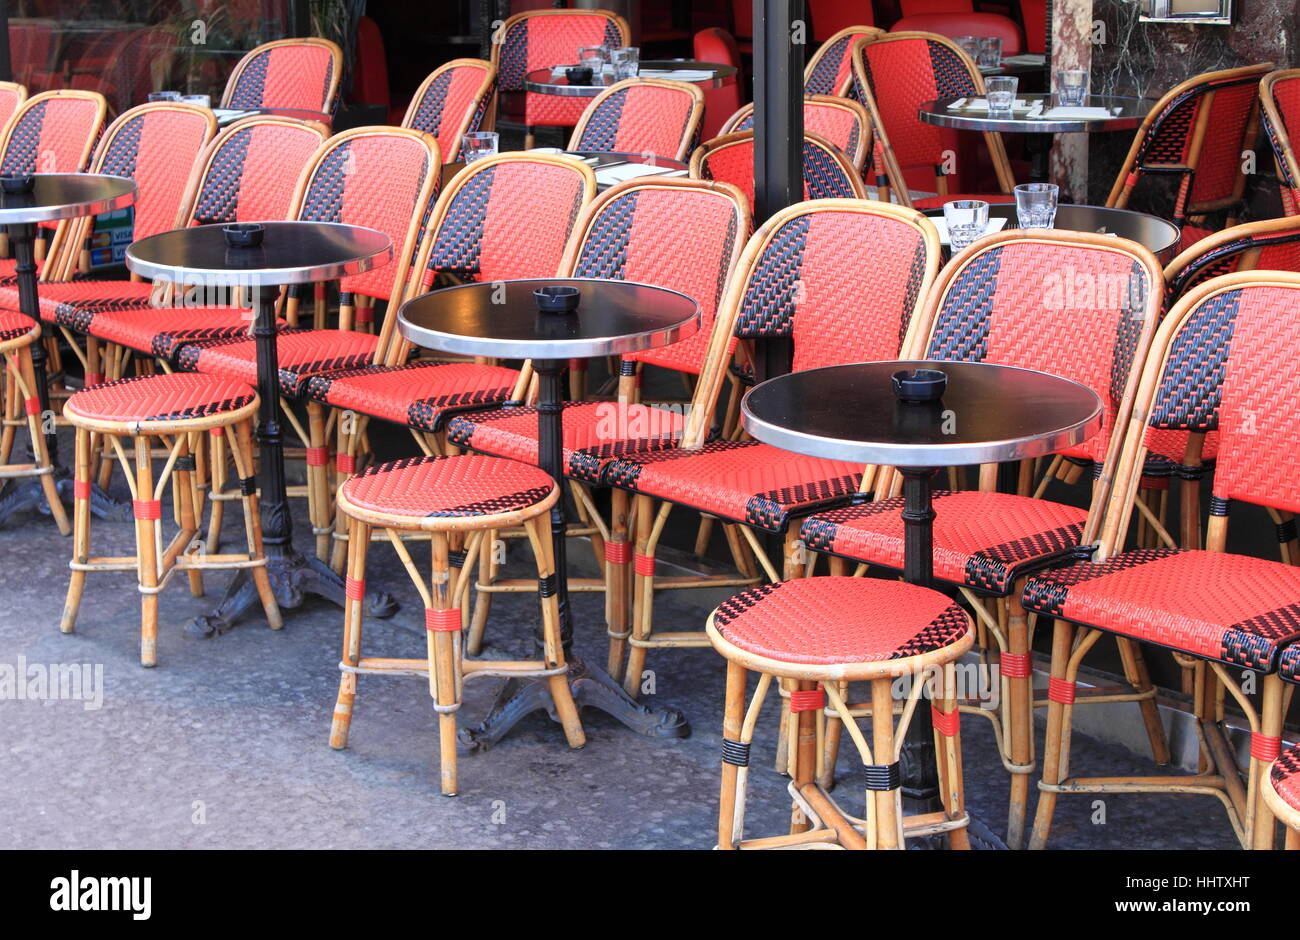 Tables In A Typical Parisian Cafe In Paris France Stock Photo - Paris cafe table